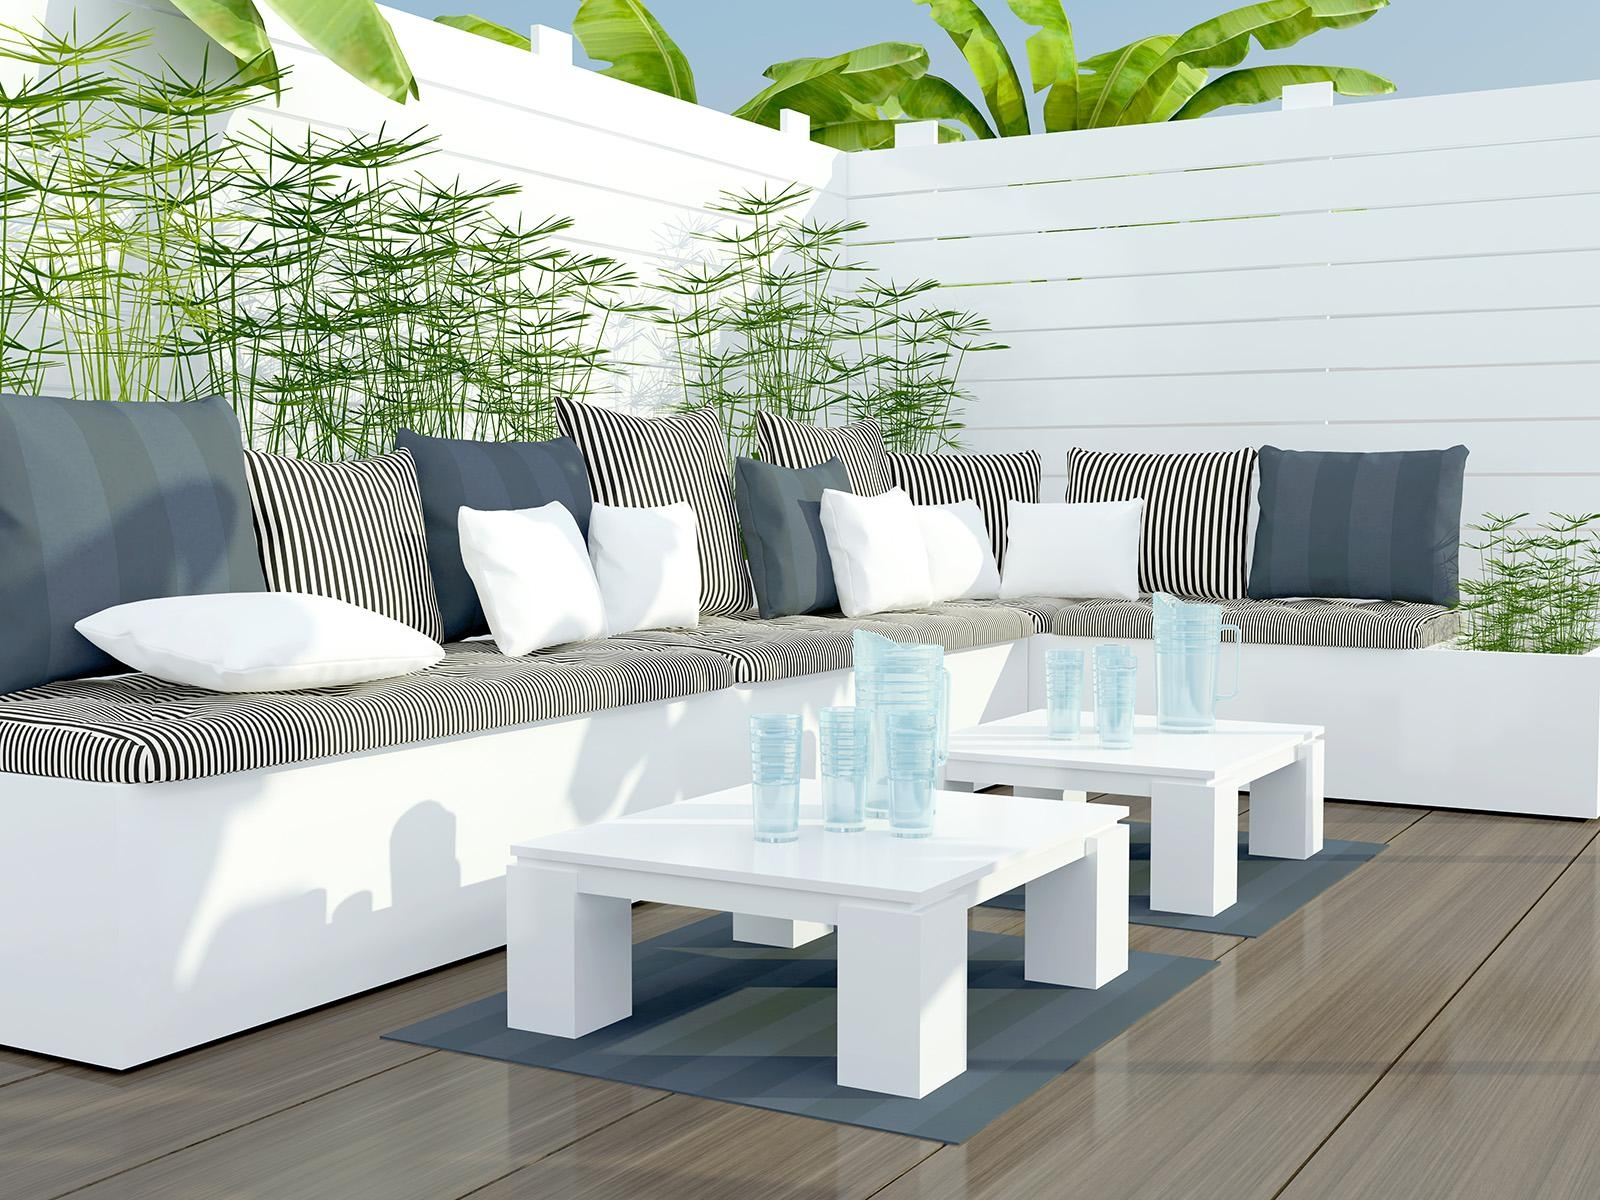 Sofa Table On The Patio Furnishings 50938 – Building Home Intended For Patio Sofa Tables (View 18 of 20)